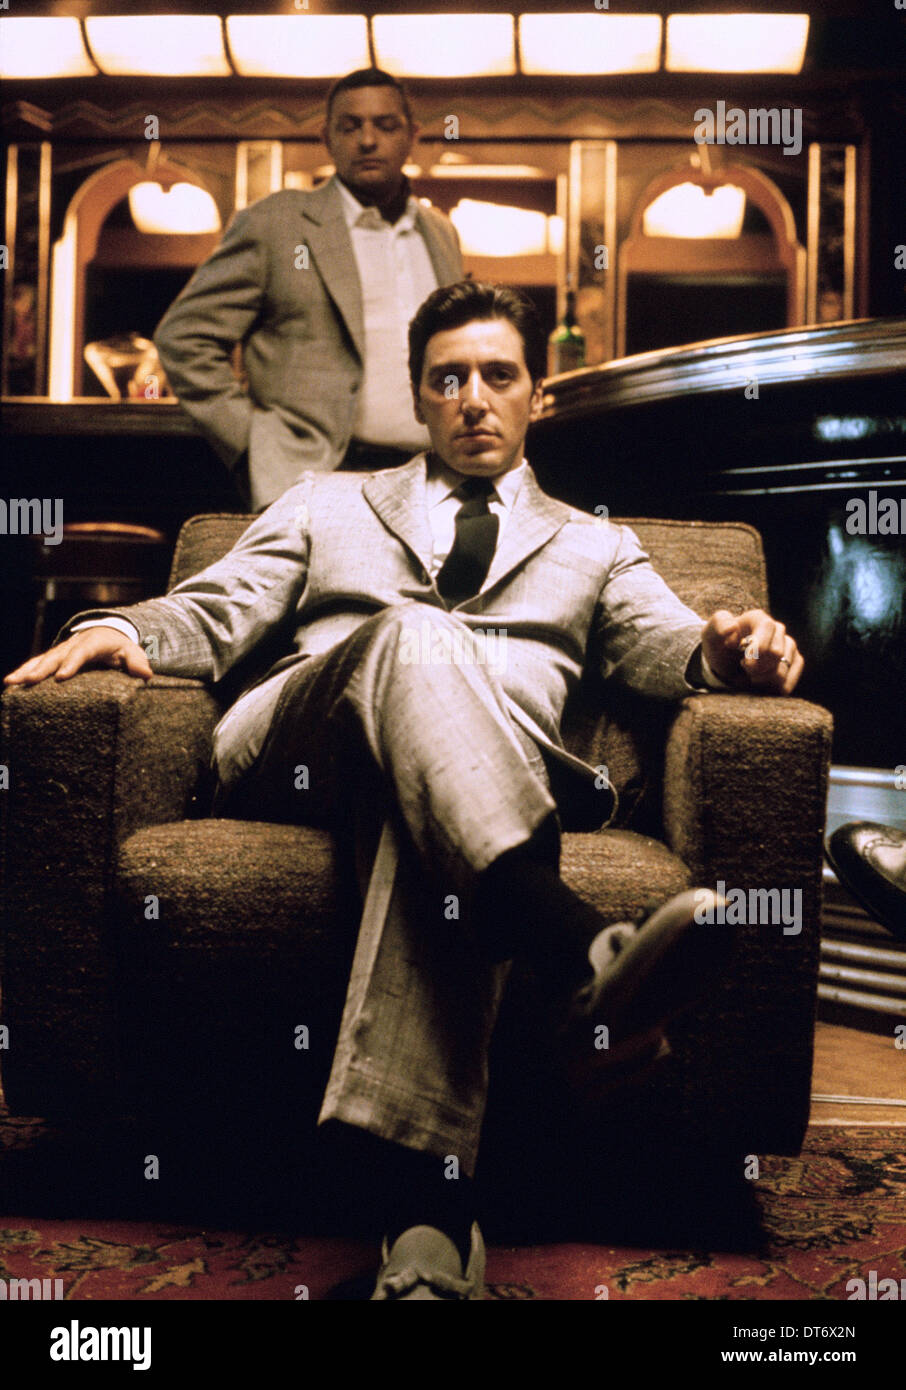 Al Pacino The Godfather Part Ii Imágenes De Stock Al